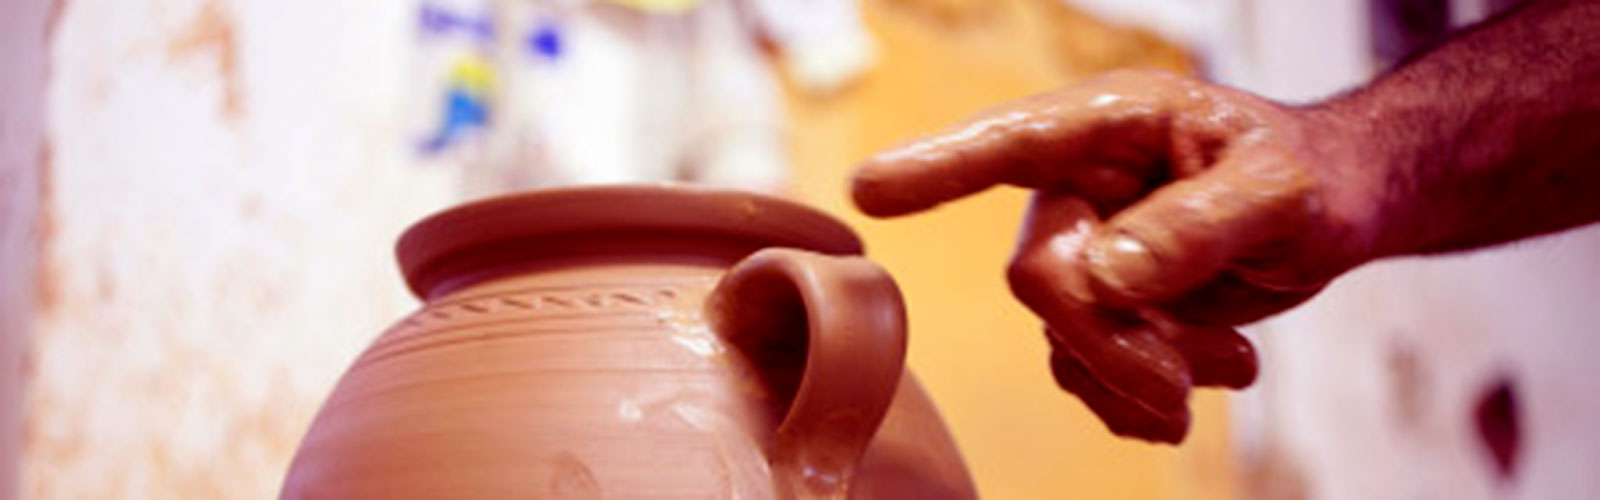 The process of making a ceramic object